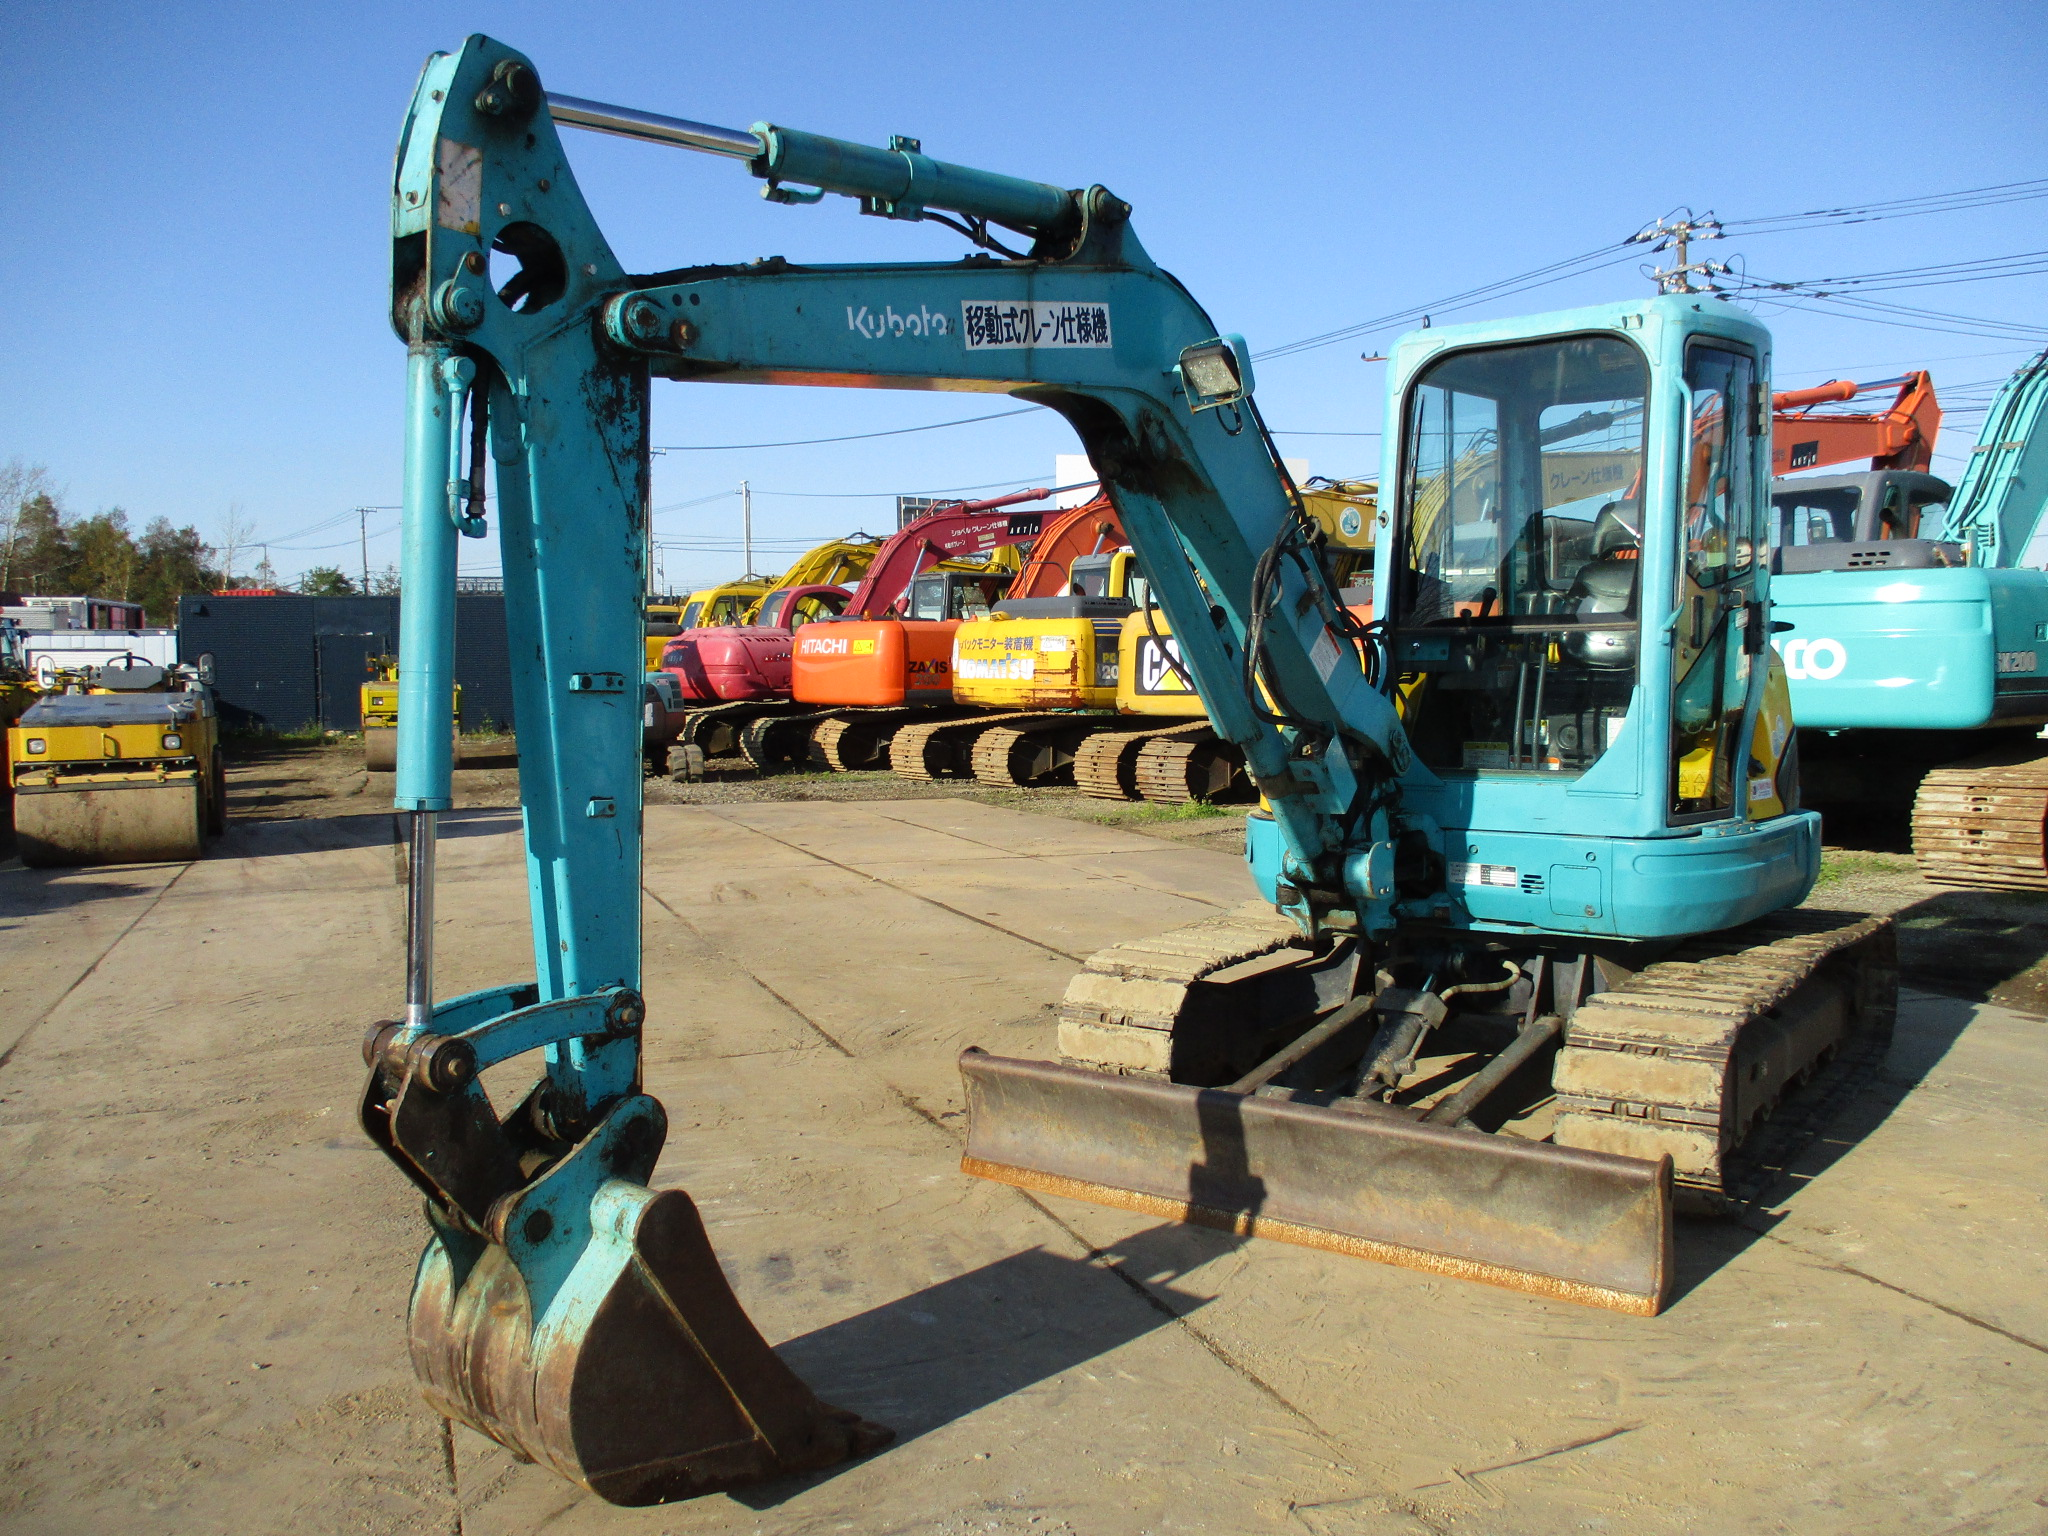 MIni excavators KUBOTA U40-3S